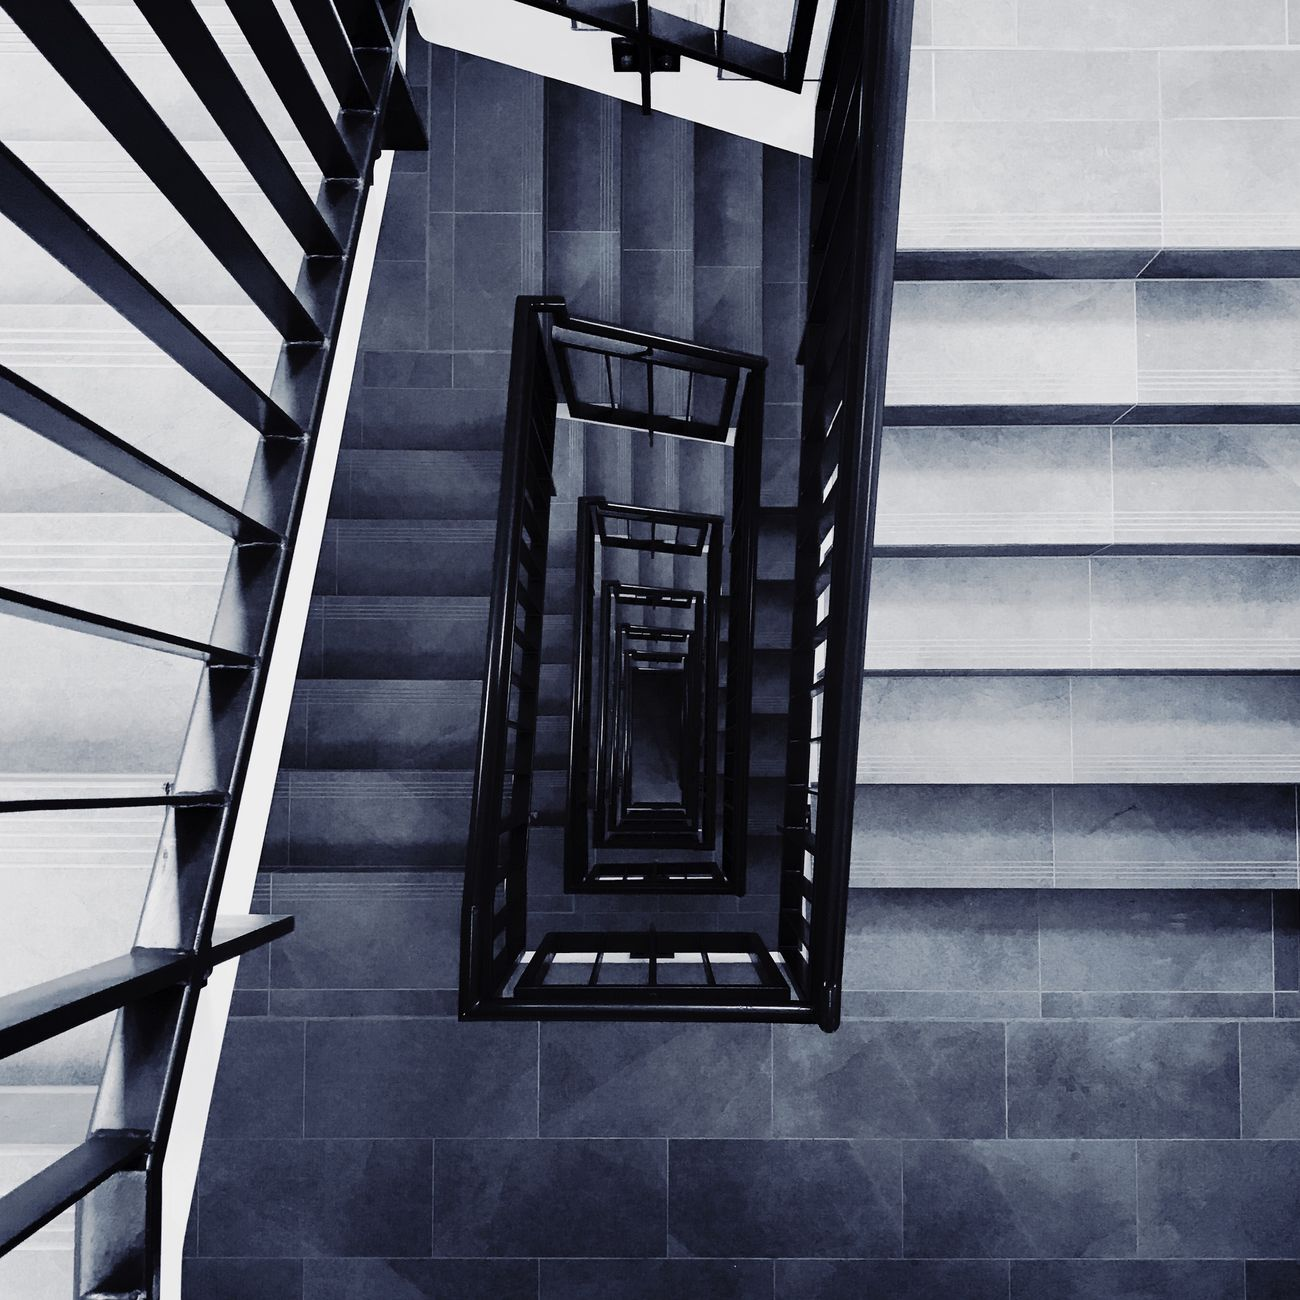 Architecture Built Structure Day Fire Escape Hand Rail In A Row No People Railing Spiral Spiral Stairs Staircase Stairs Steps Steps And Staircases